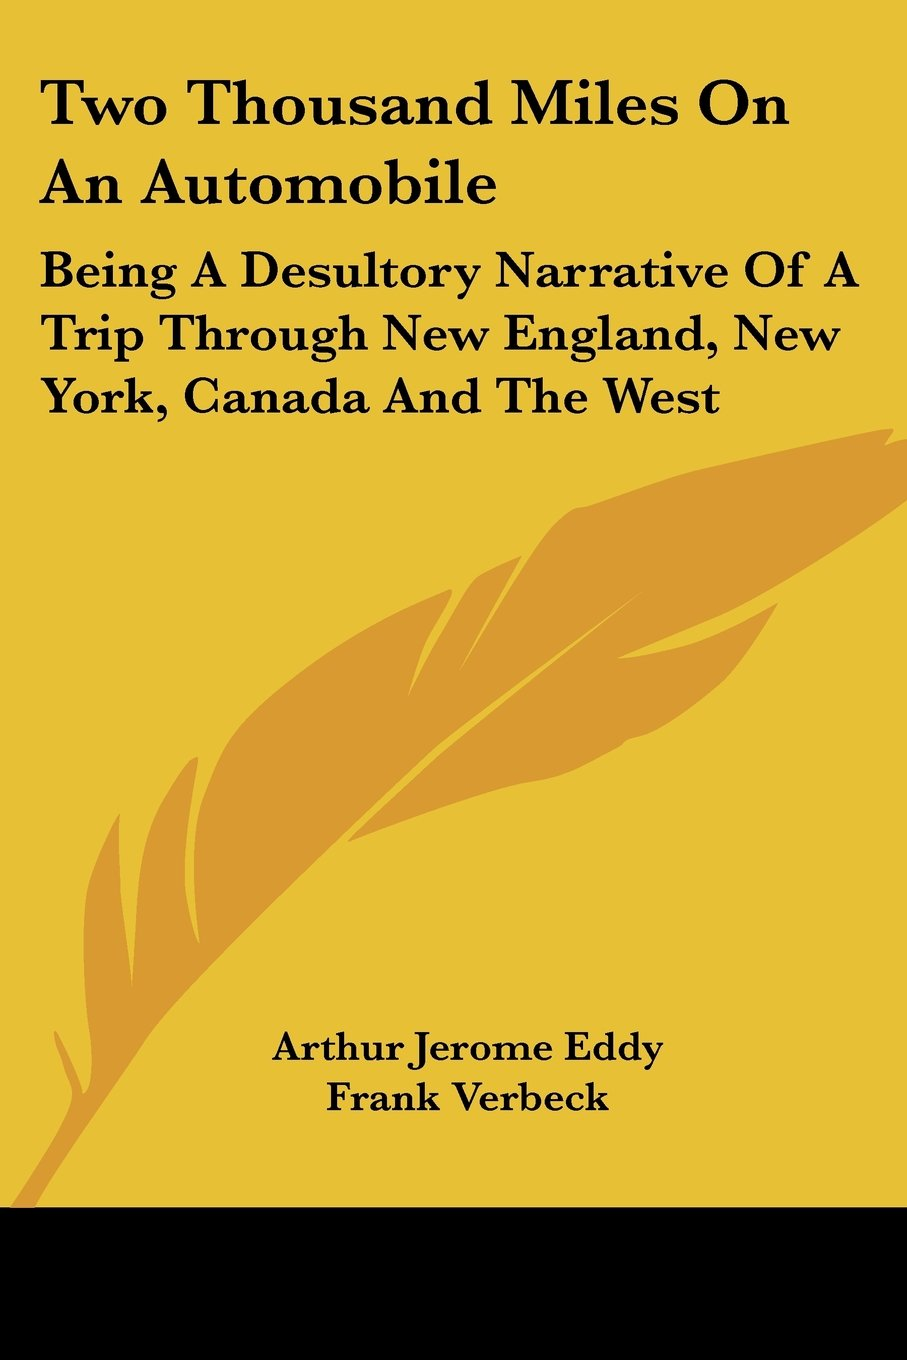 Two Thousand Miles On An Automobile: Being A Desultory Narrative Of A Trip Through New England, New York, Canada And The West pdf